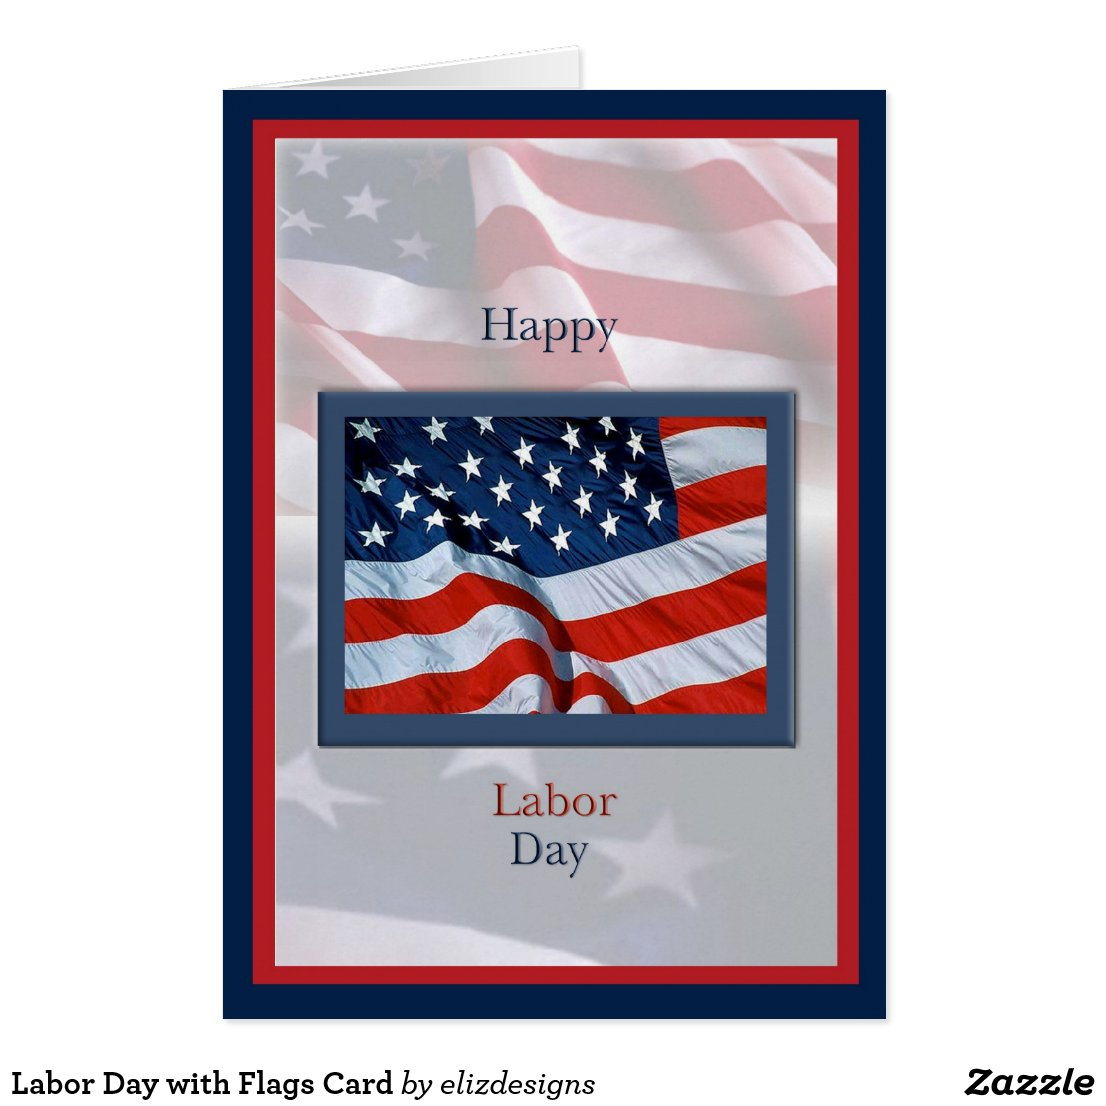 Labor Day with Flags Card